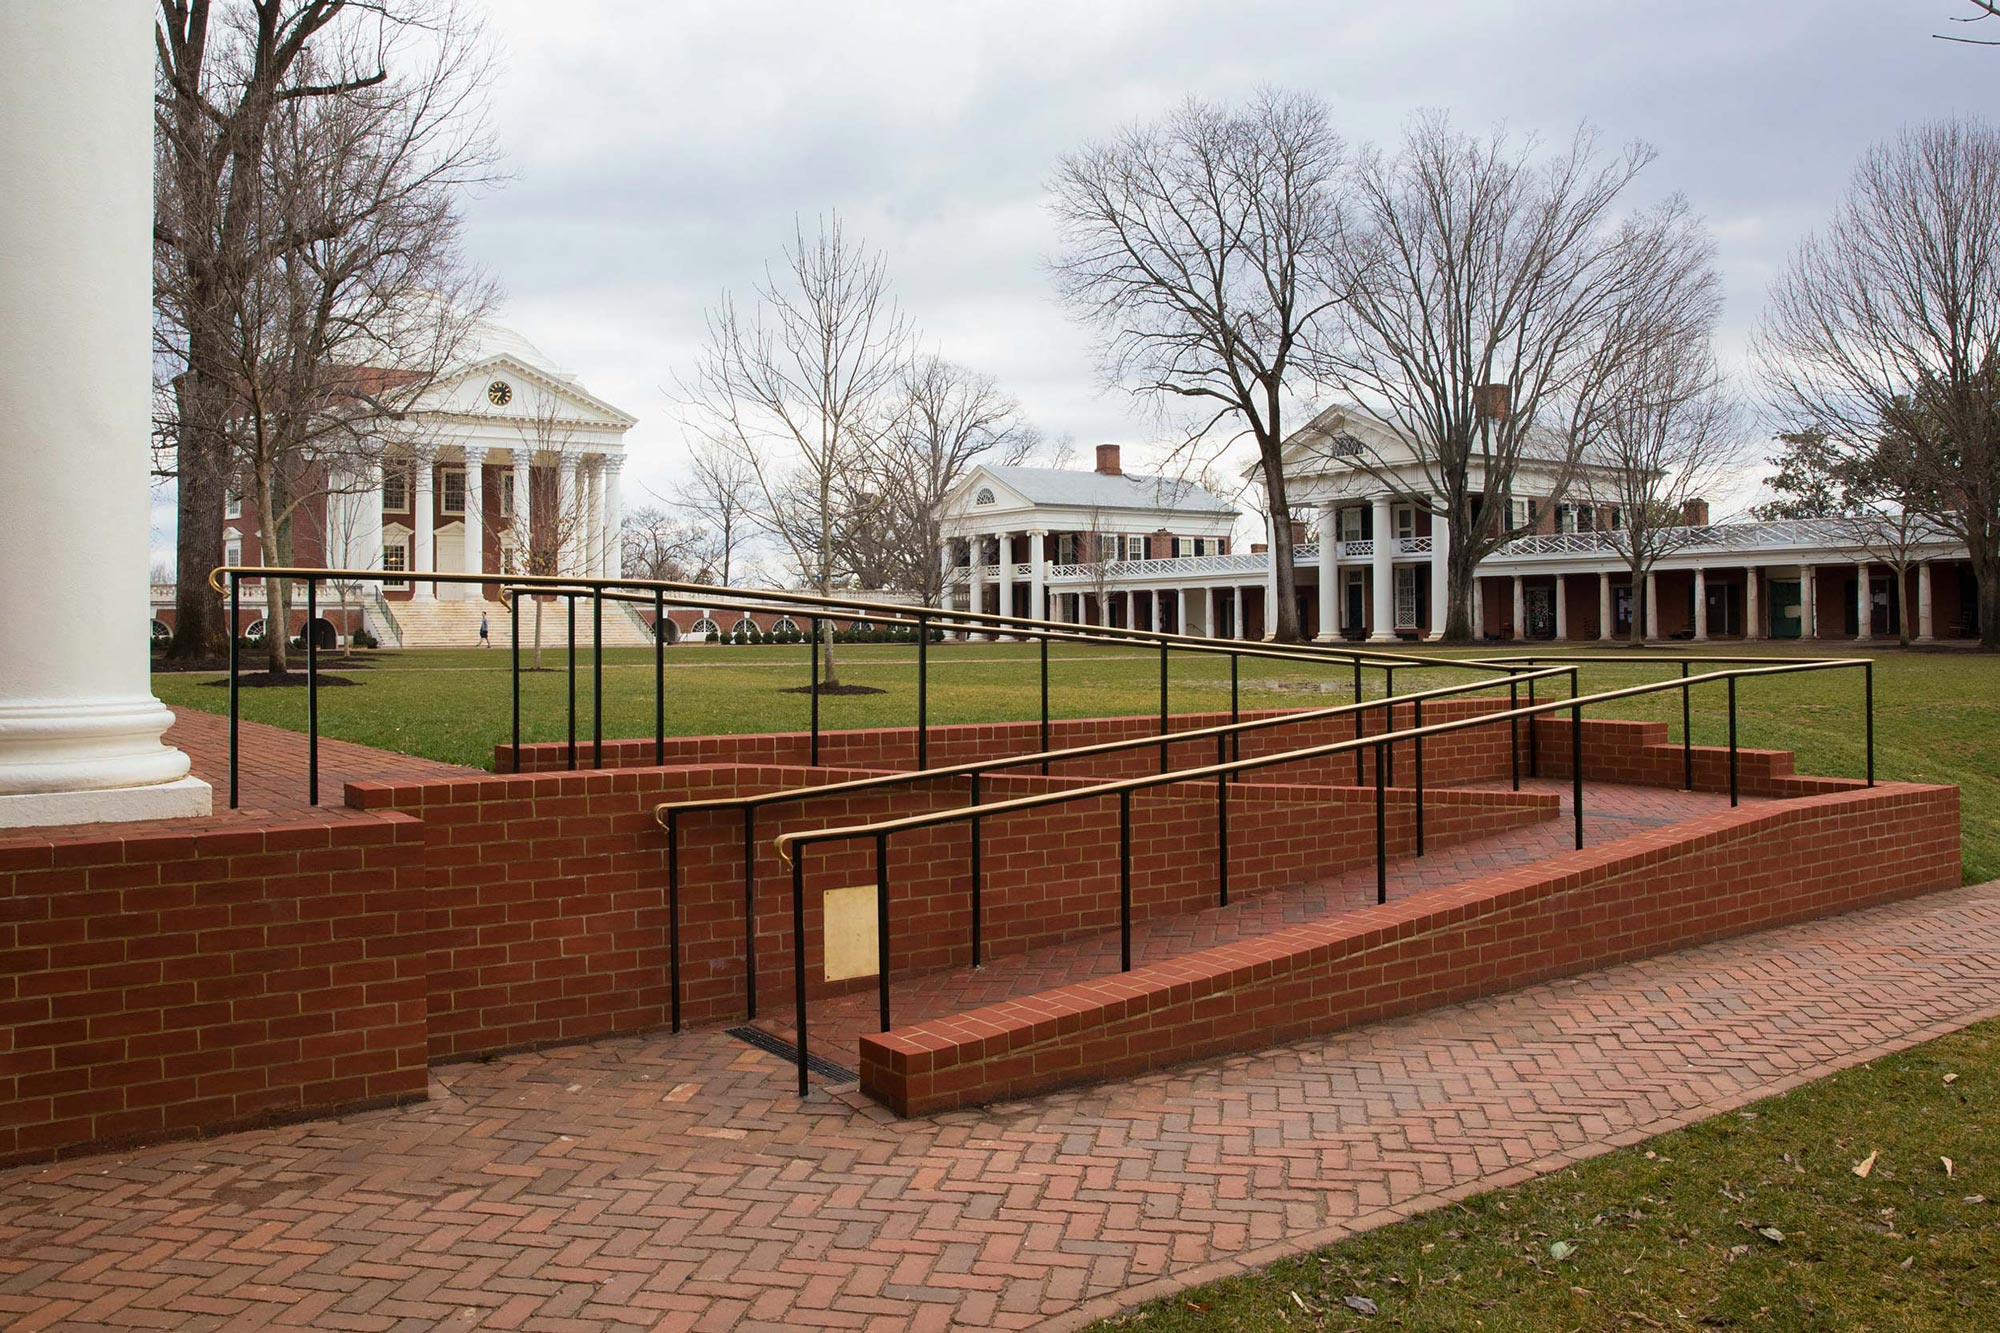 : In 2019, the University added two ramps on the West side of the Lawn, adjacent to Pavilions V and IX. (Photos by Dan Addison, University Communications)